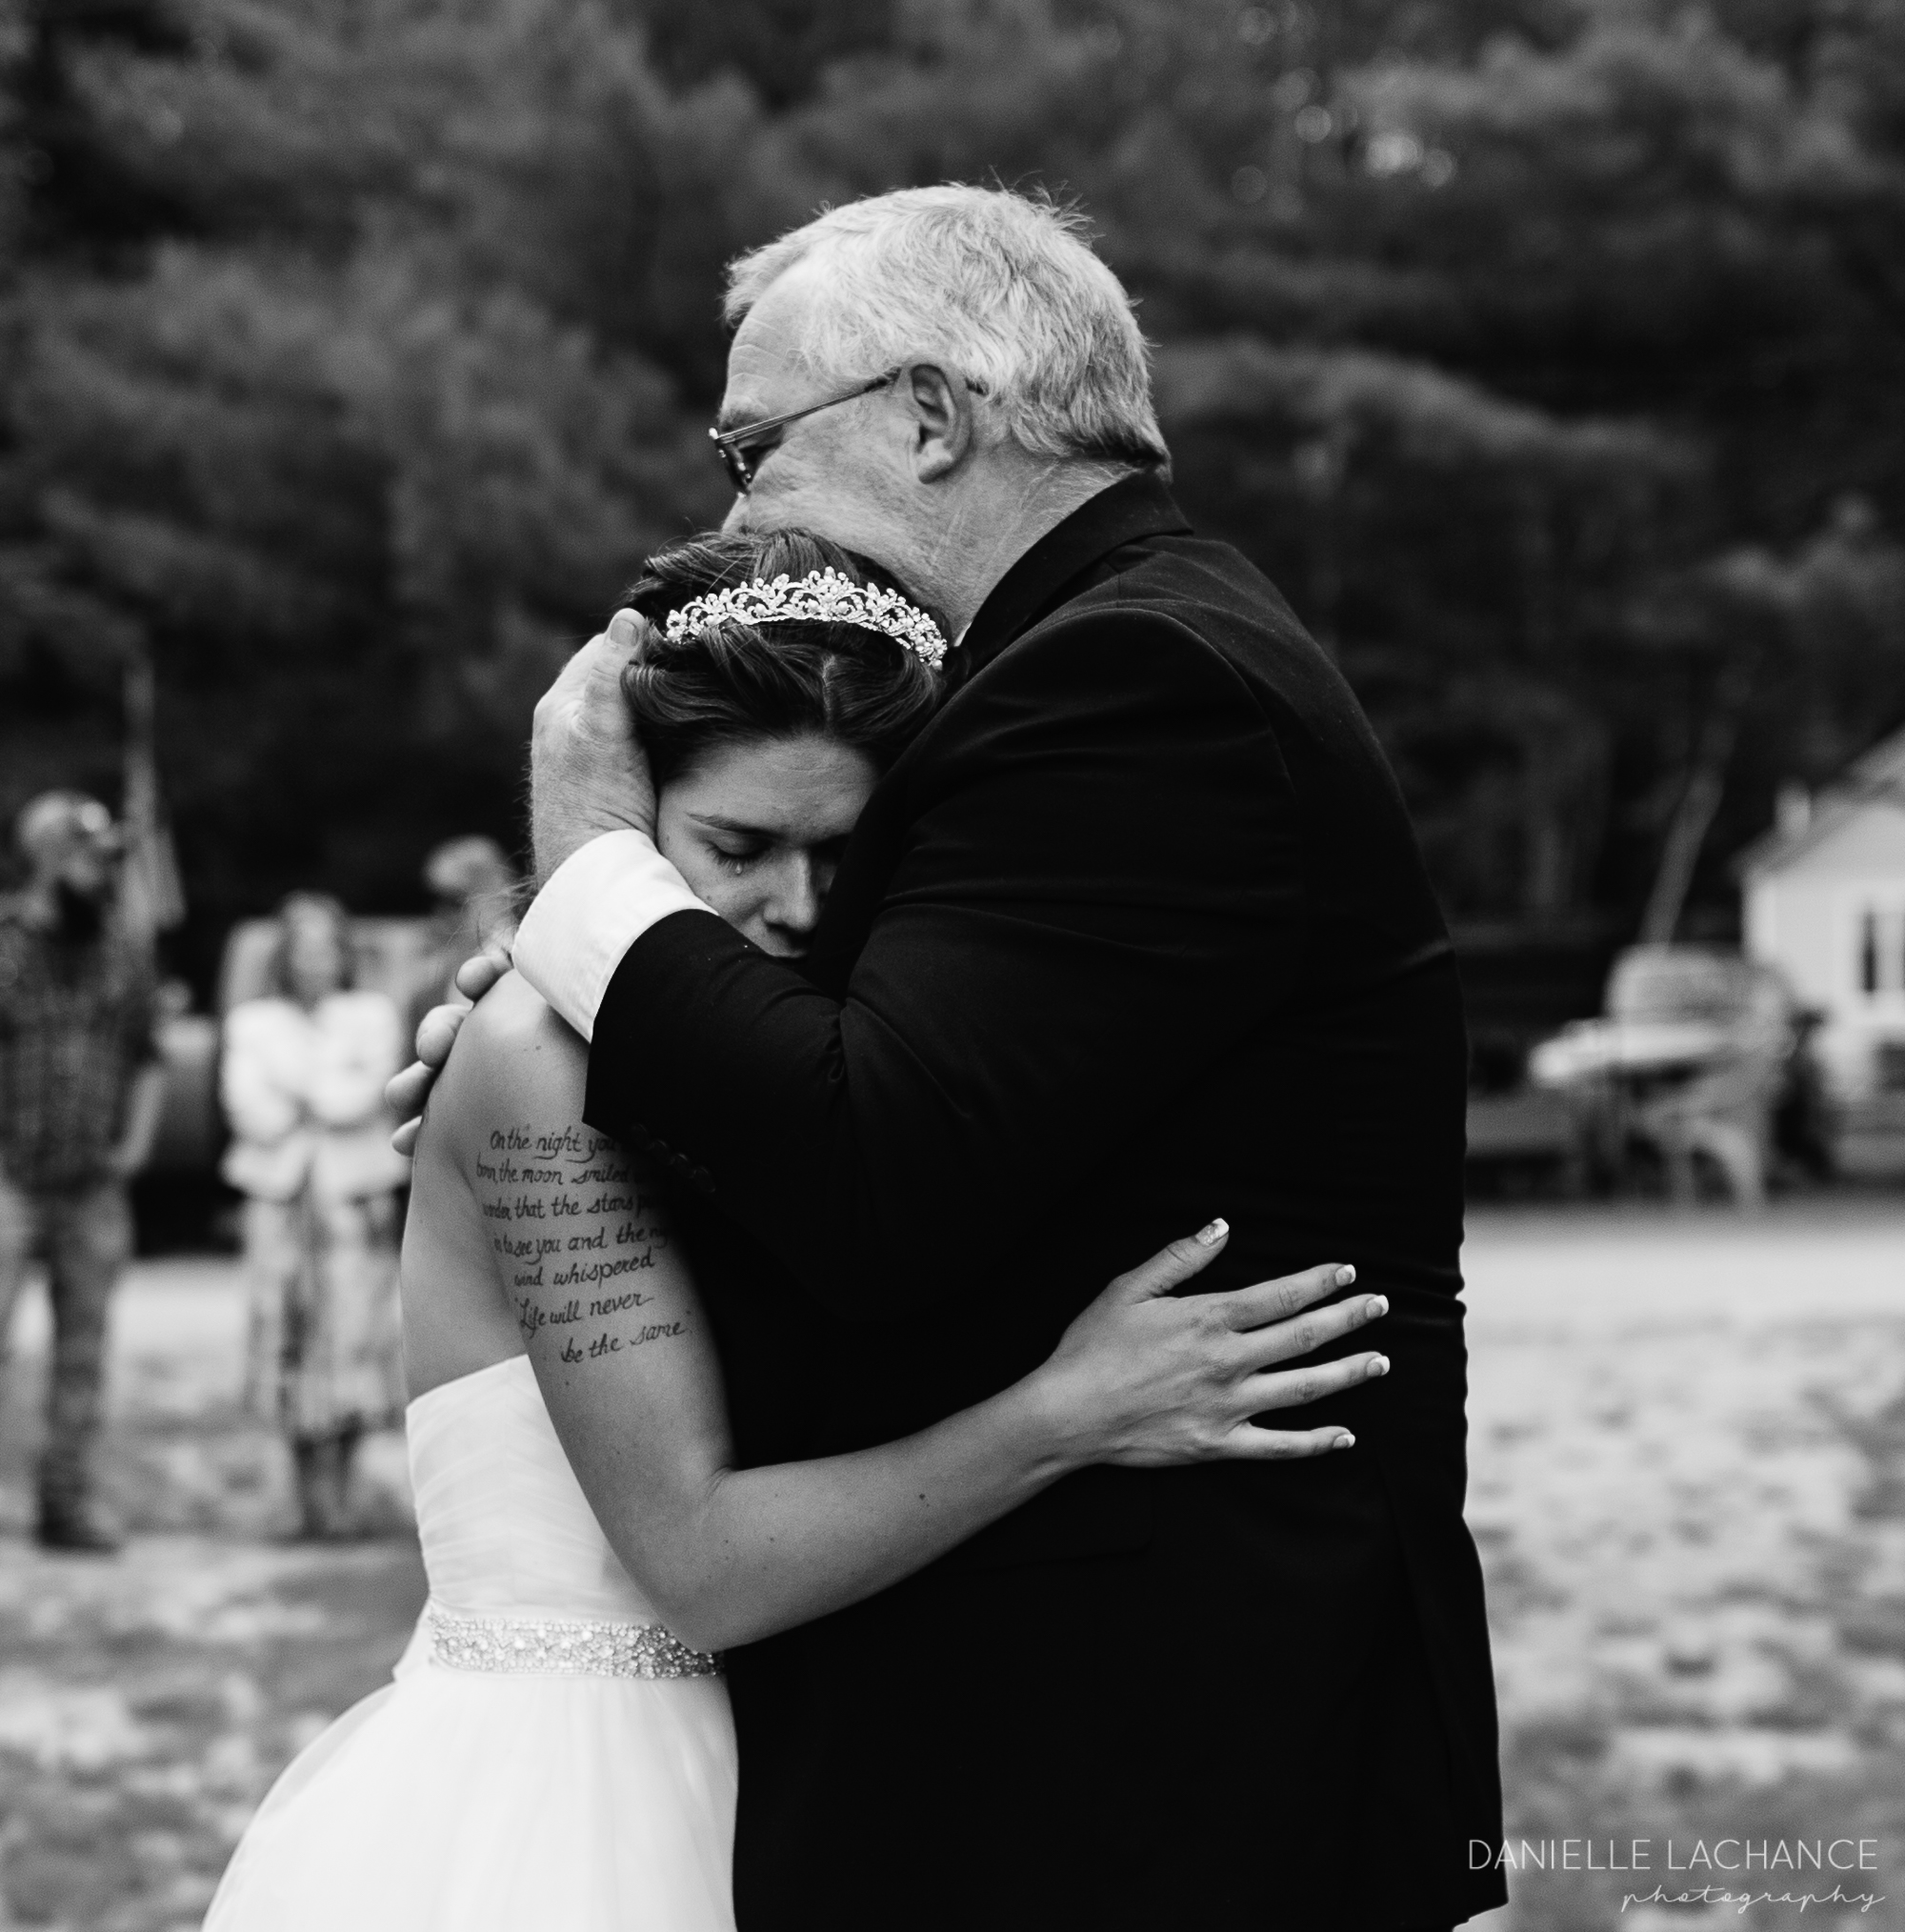 maine-father-daughter-dance-emotional-black-and-white-documentary-photographer.jpg